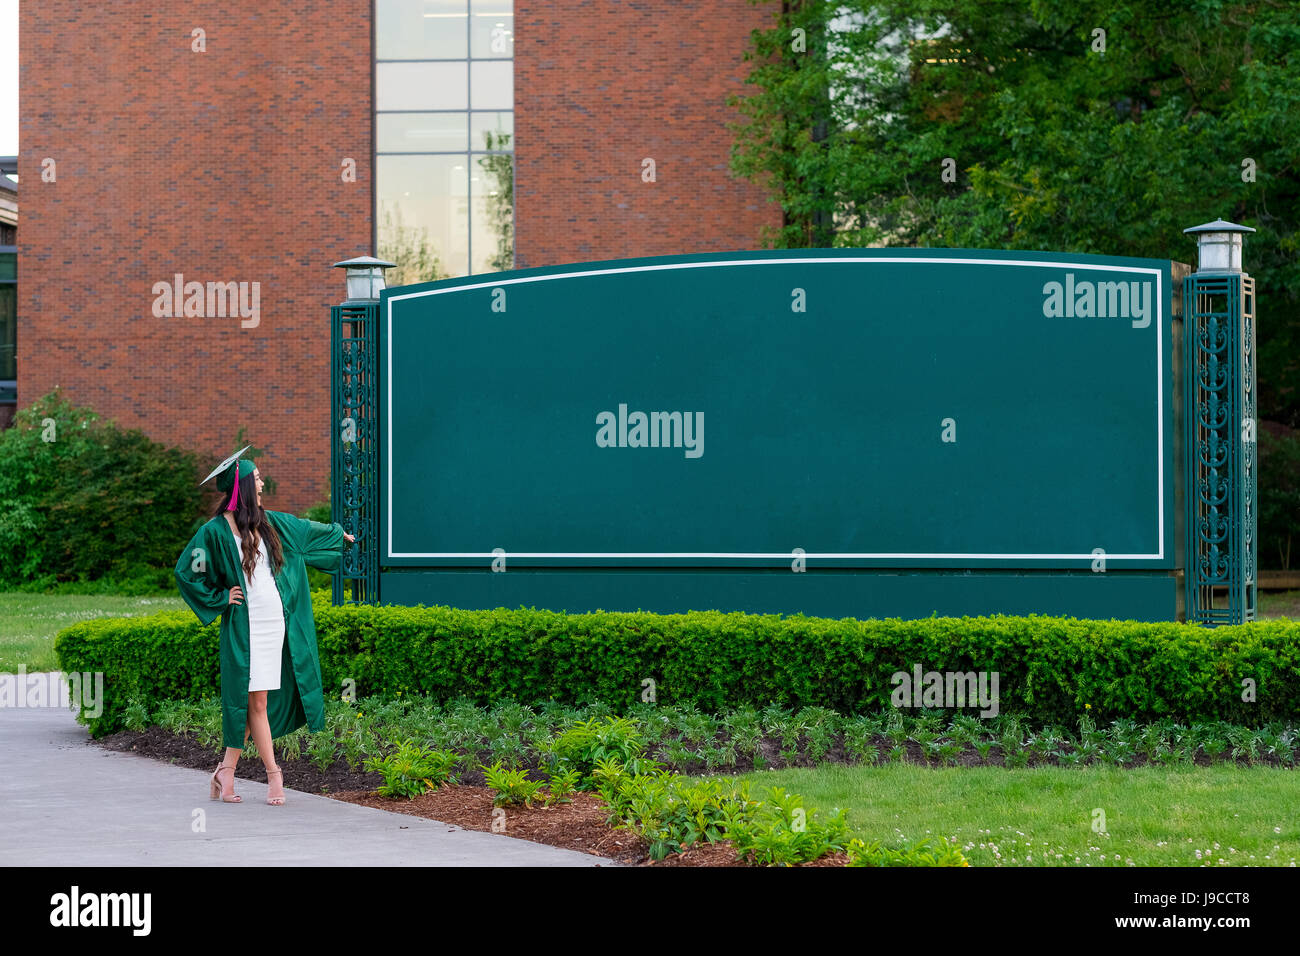 College Graduation Photo on University Campus - Stock Image